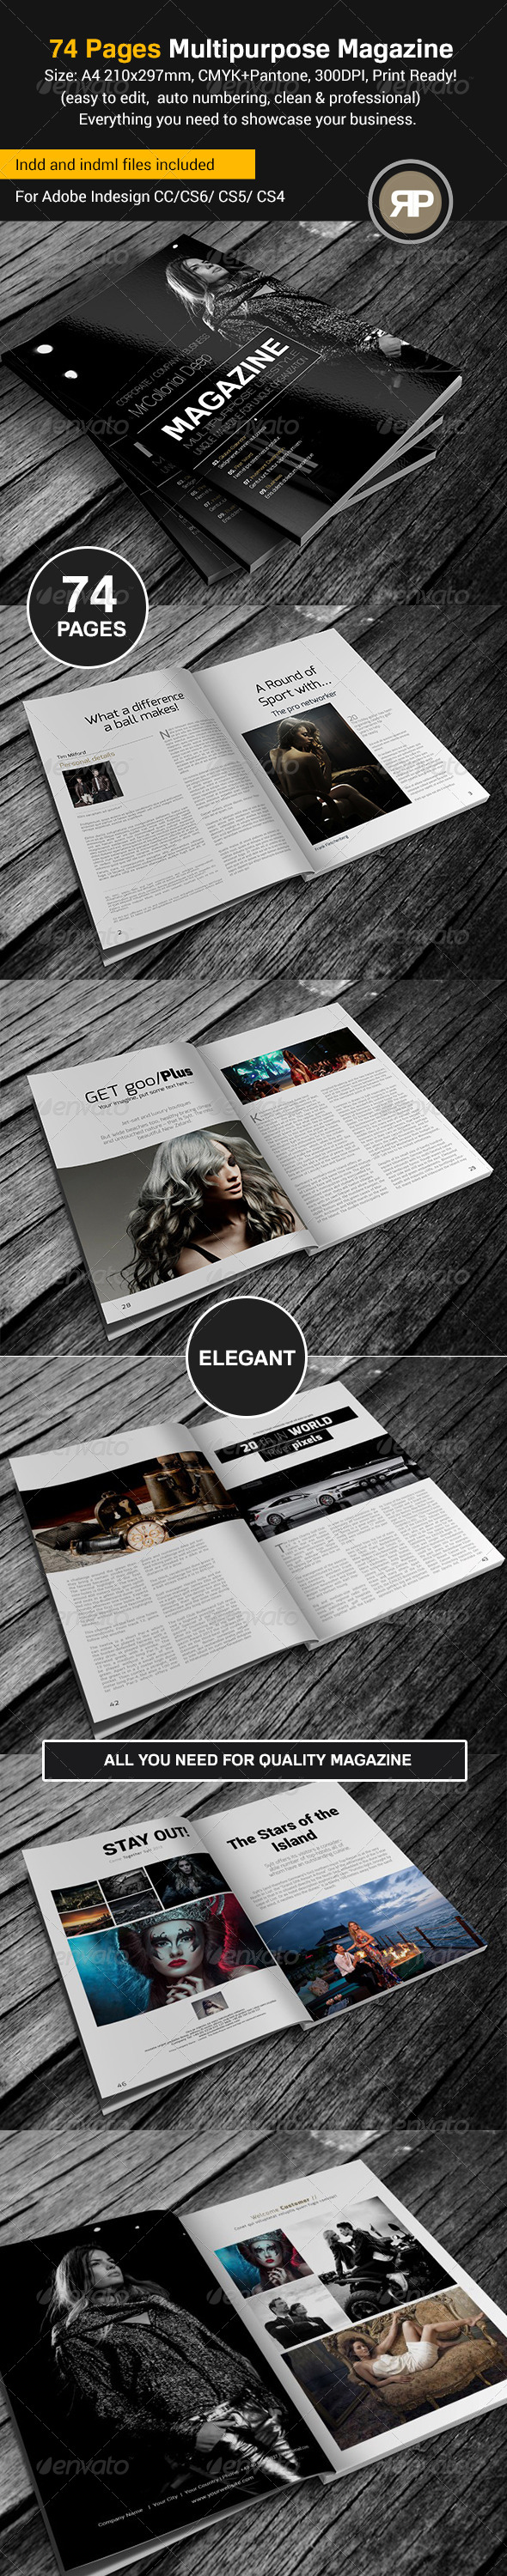 GraphicRiver 74 Pages Multipurpose Magazine Template 8003515